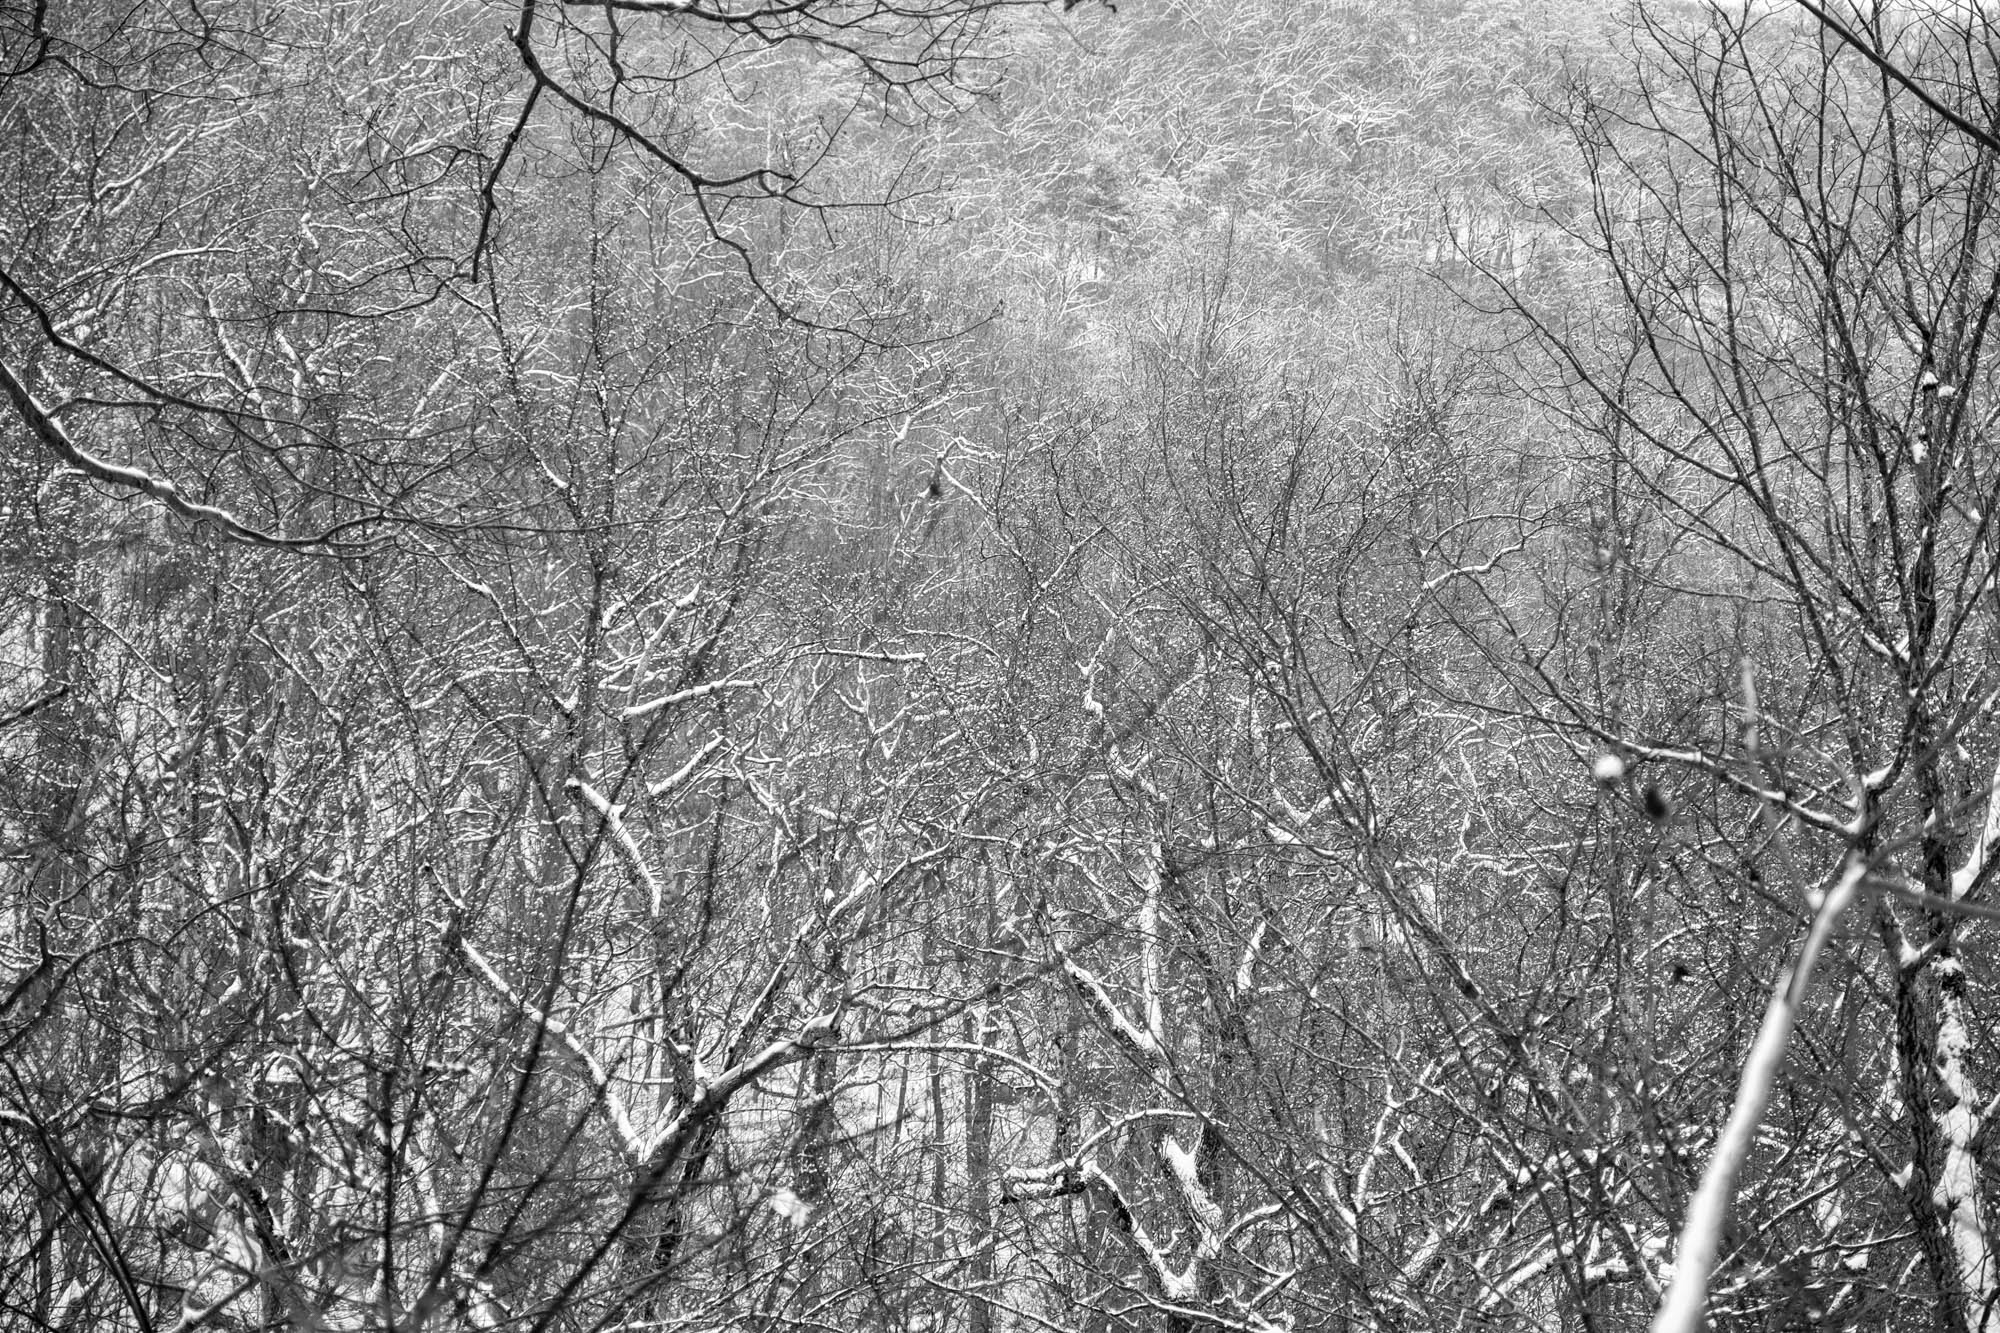 Snowy trees along the hike.